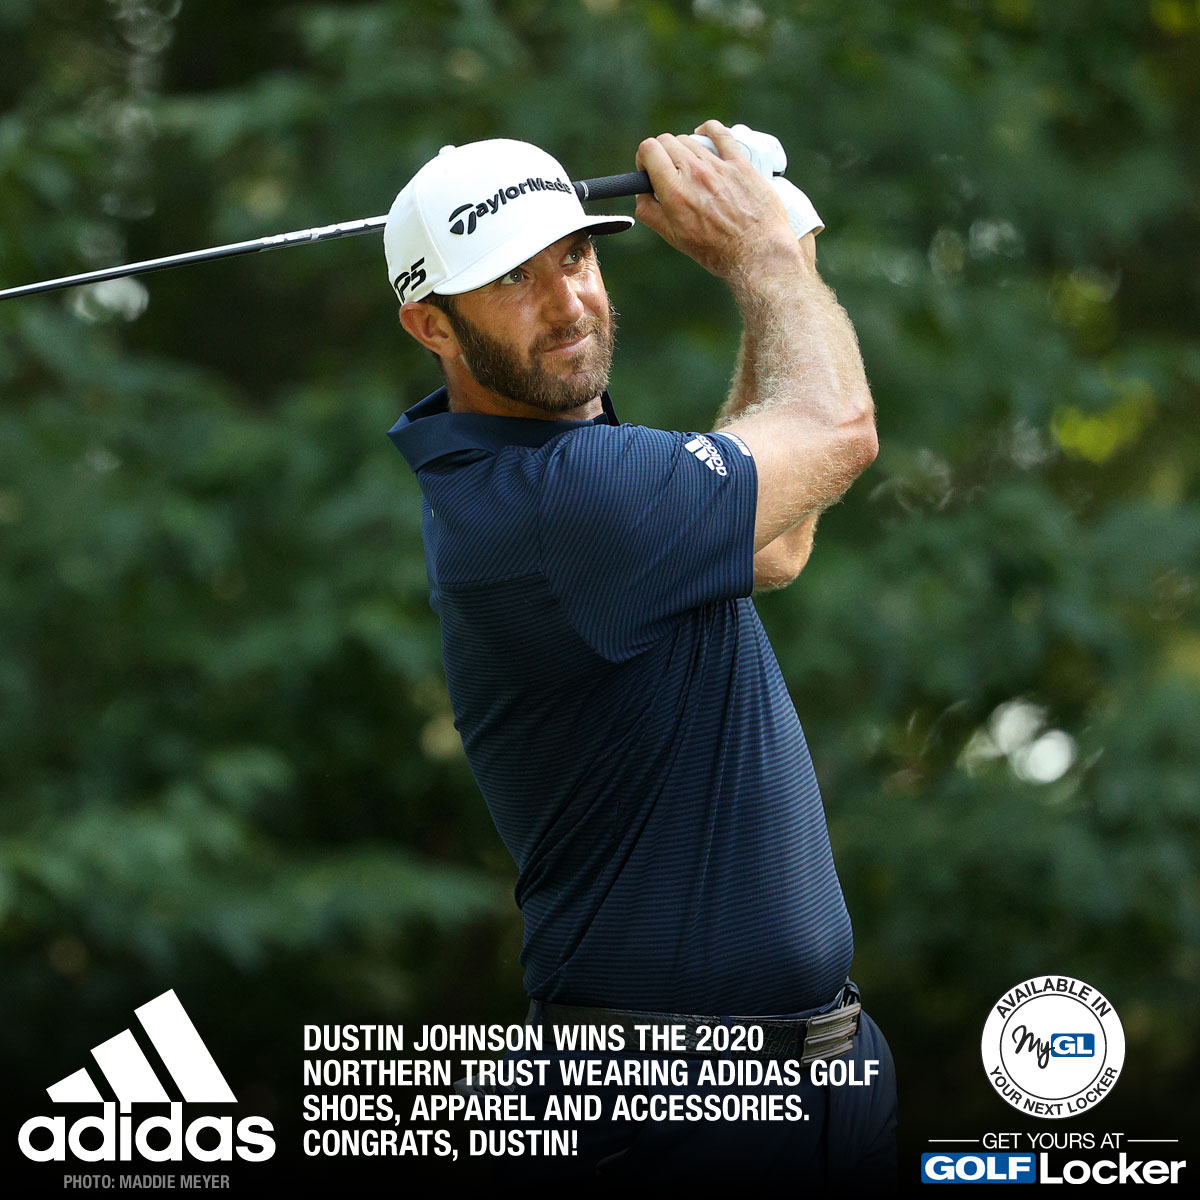 Dustin Johnson wins the 2020 Northern Trust wearing adidas Golf shoes, apparel and accessories. Congrats, Dustin!